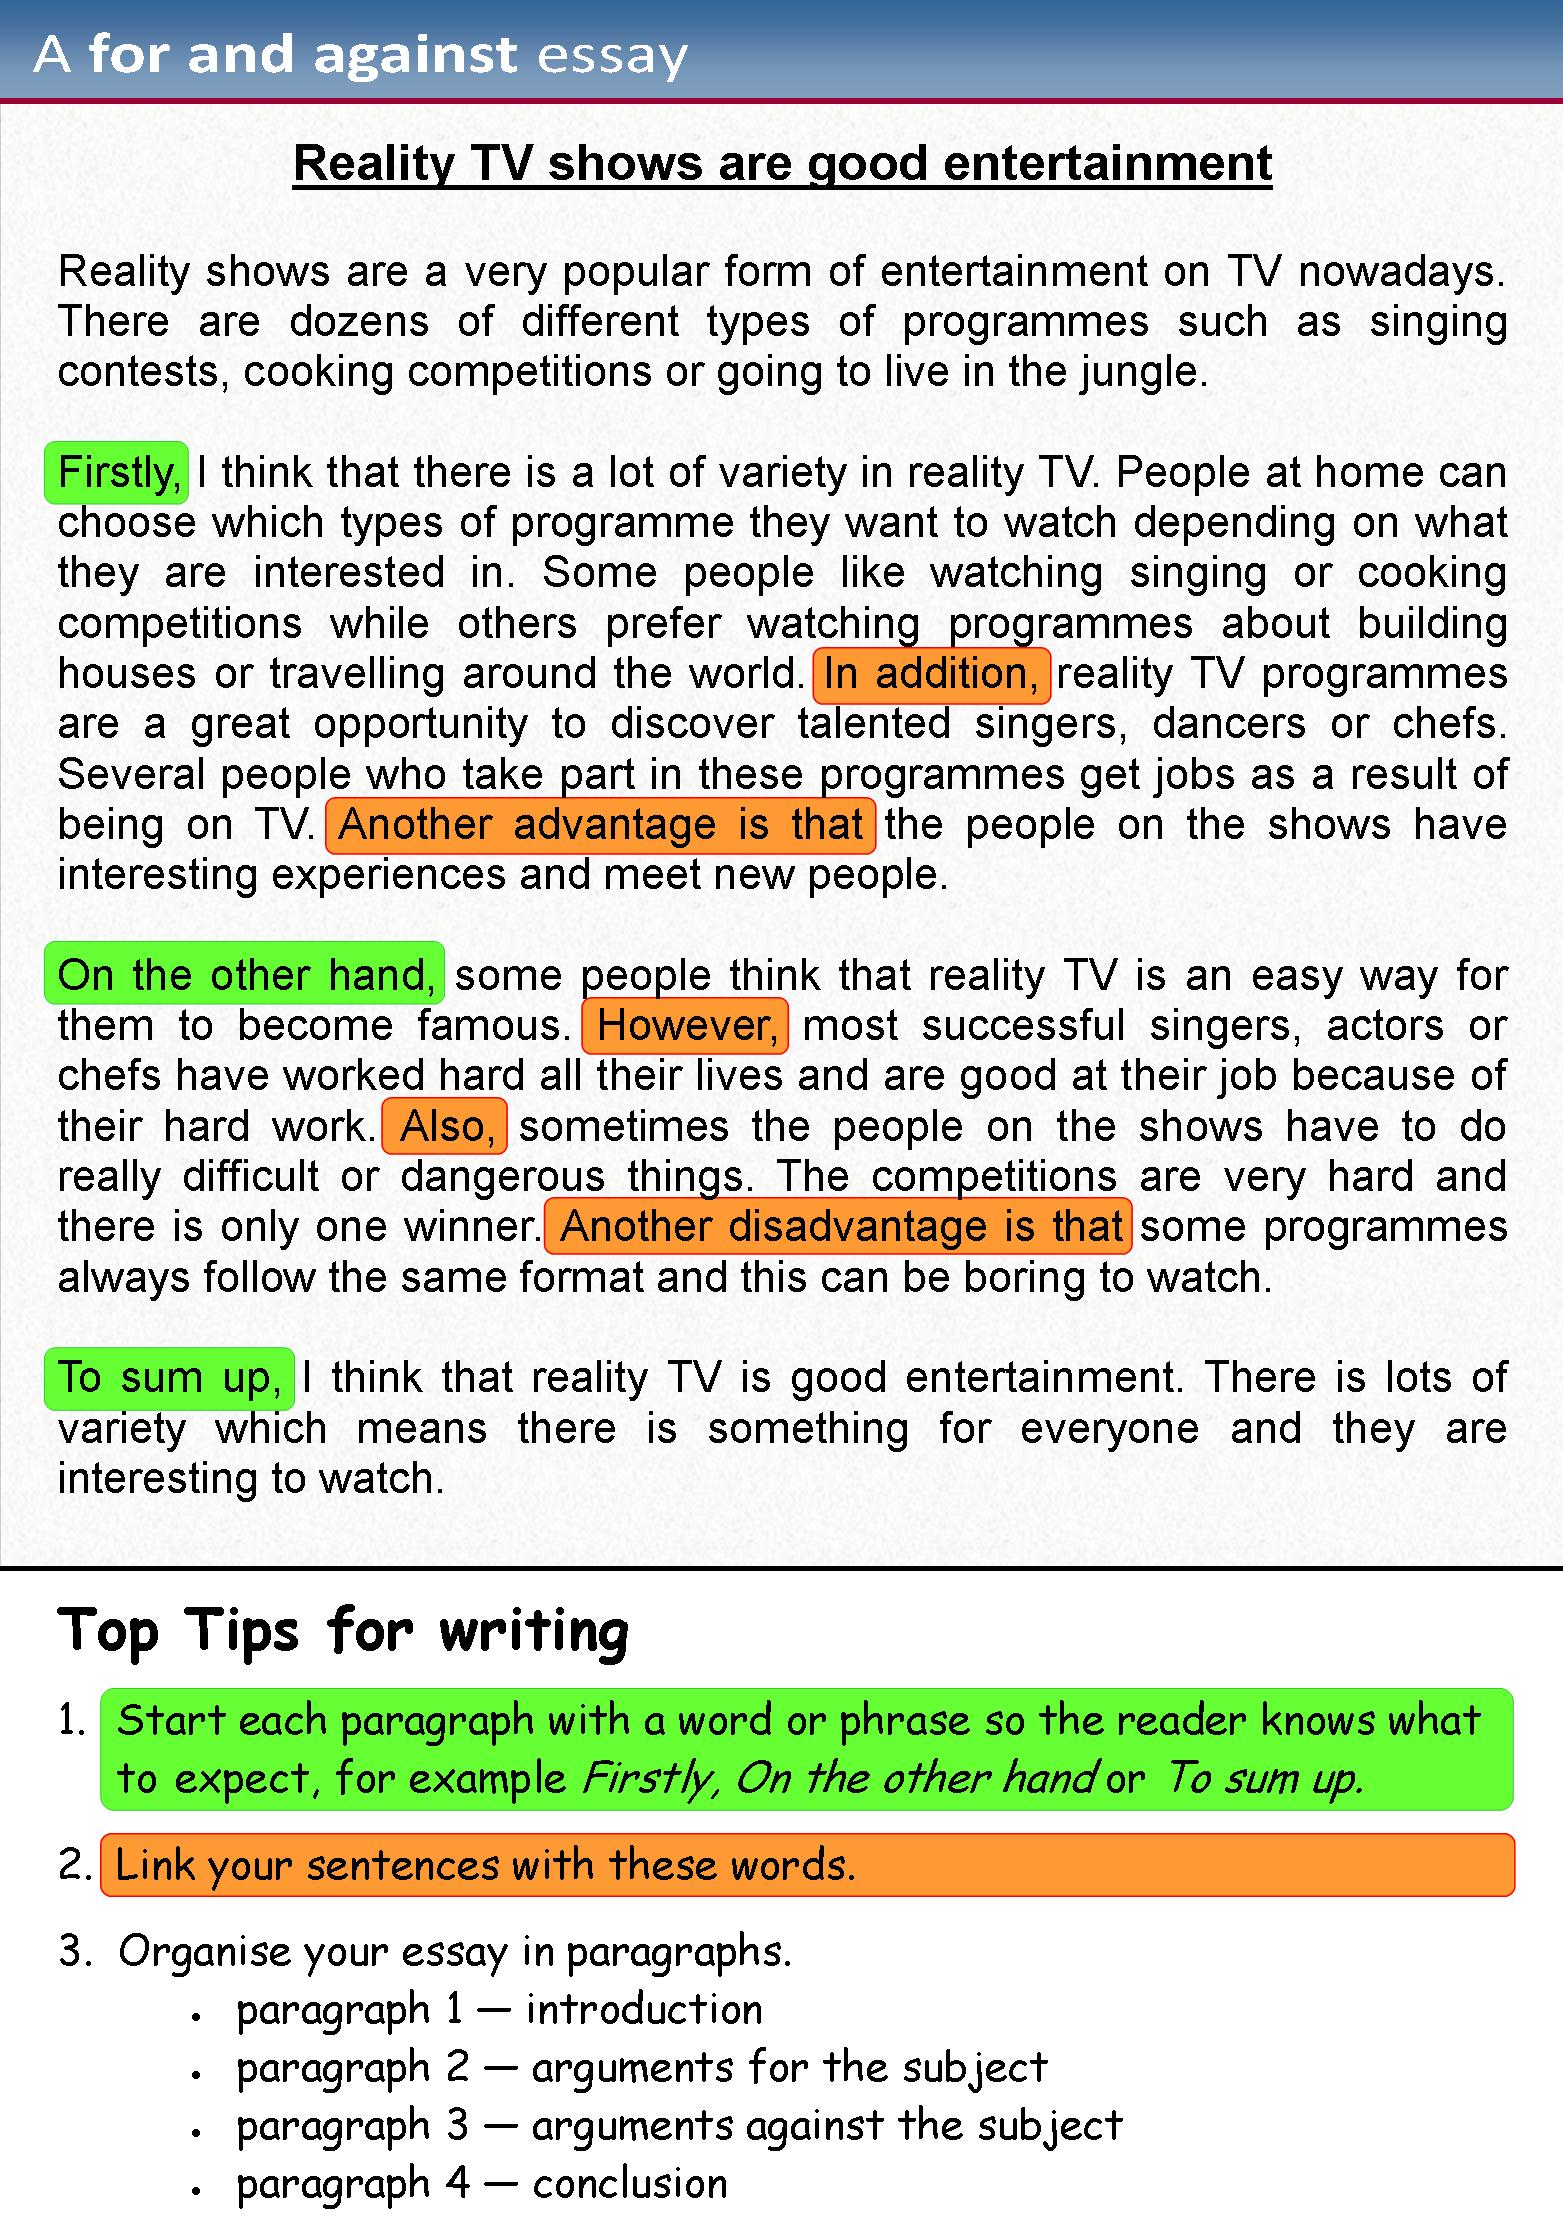 024 Tips To Write Good Essay Example For Against 1 Marvelous A Sat Descriptive Narrative Full